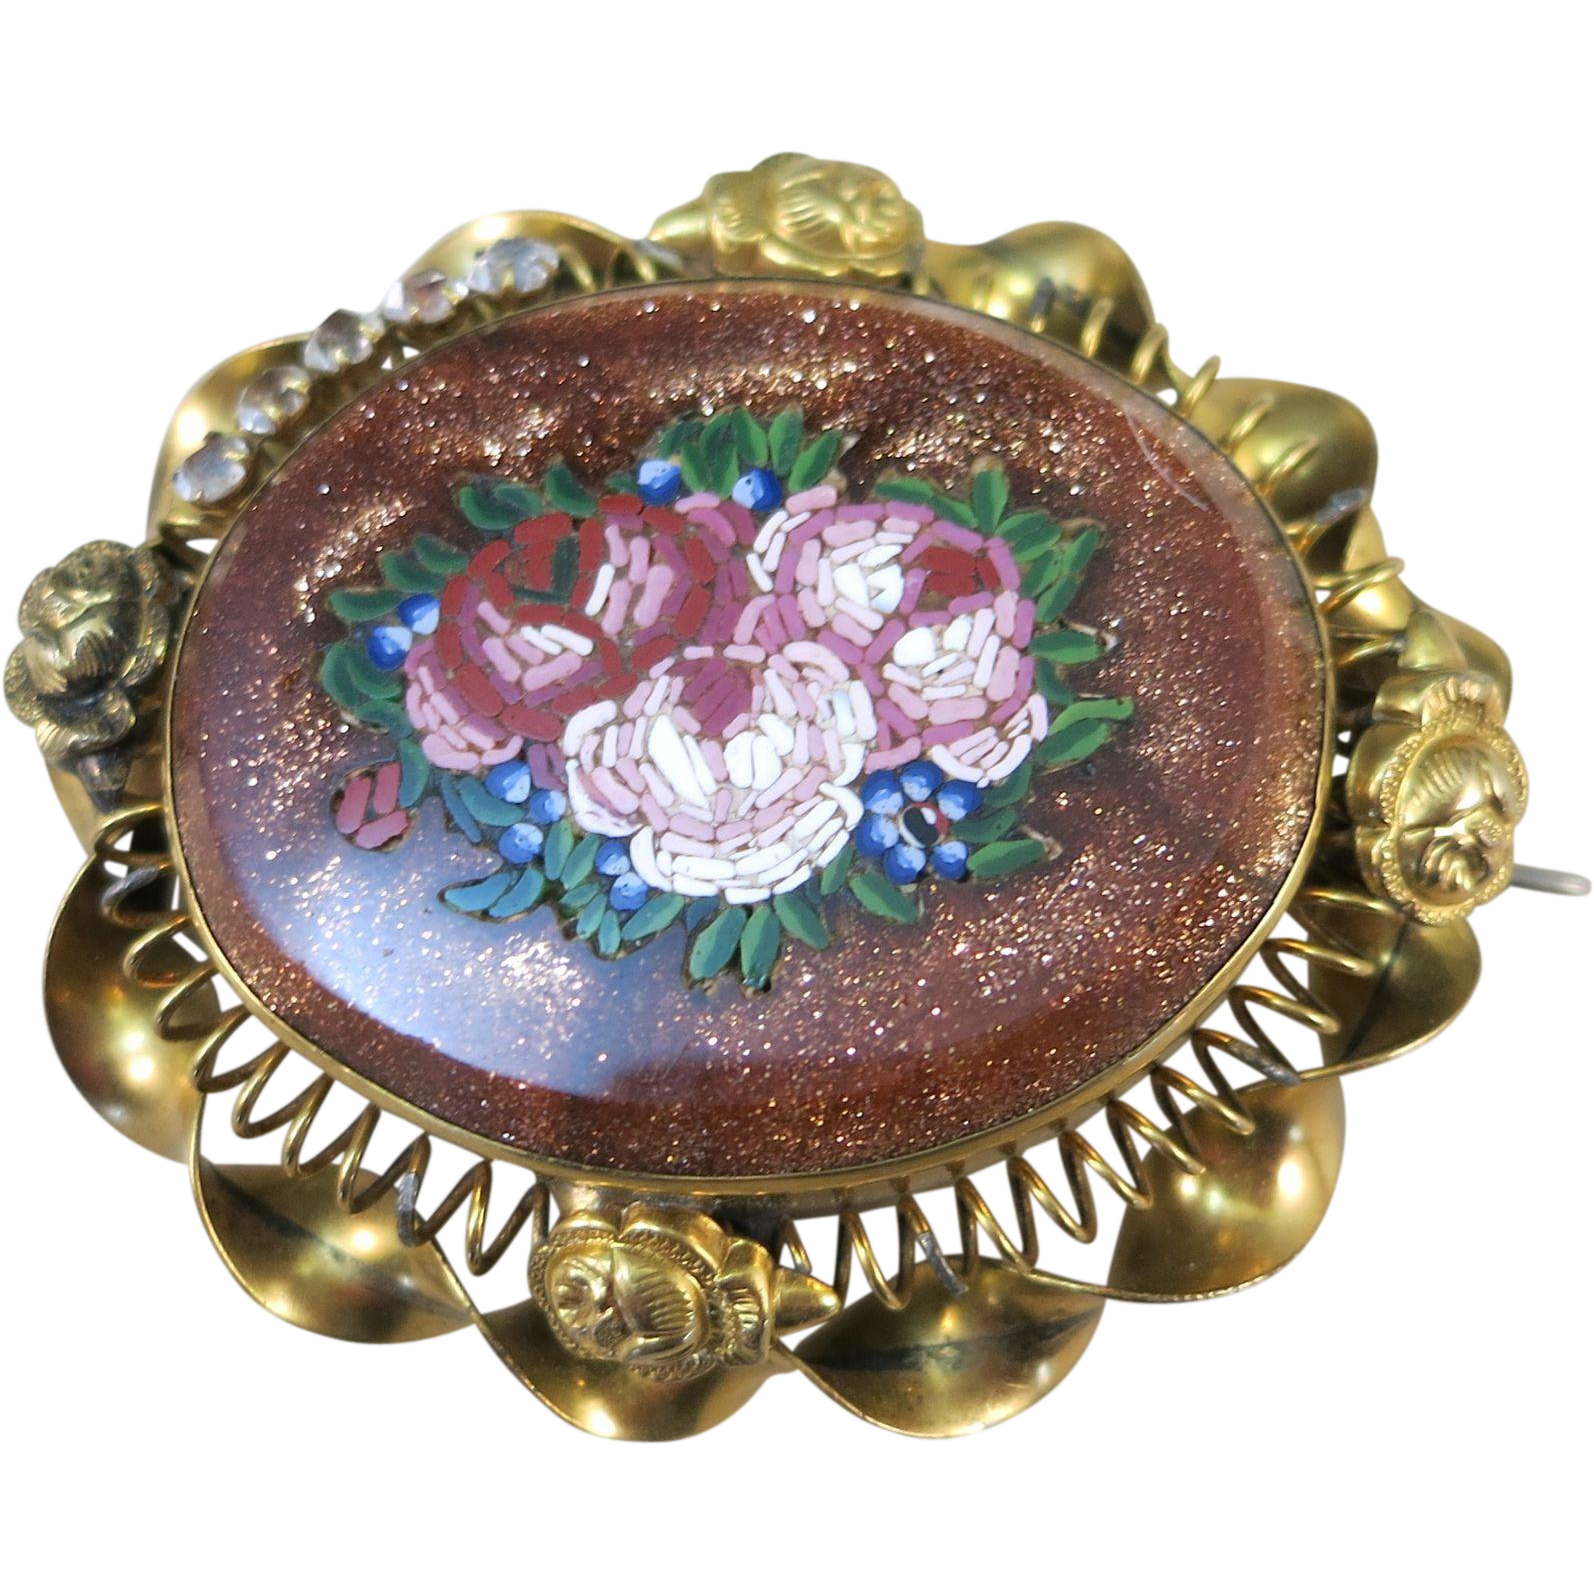 VINTAGE Victorian Era Micromosaic Floral Bouquet Brooch Set in Gold Stone  Made in Italy